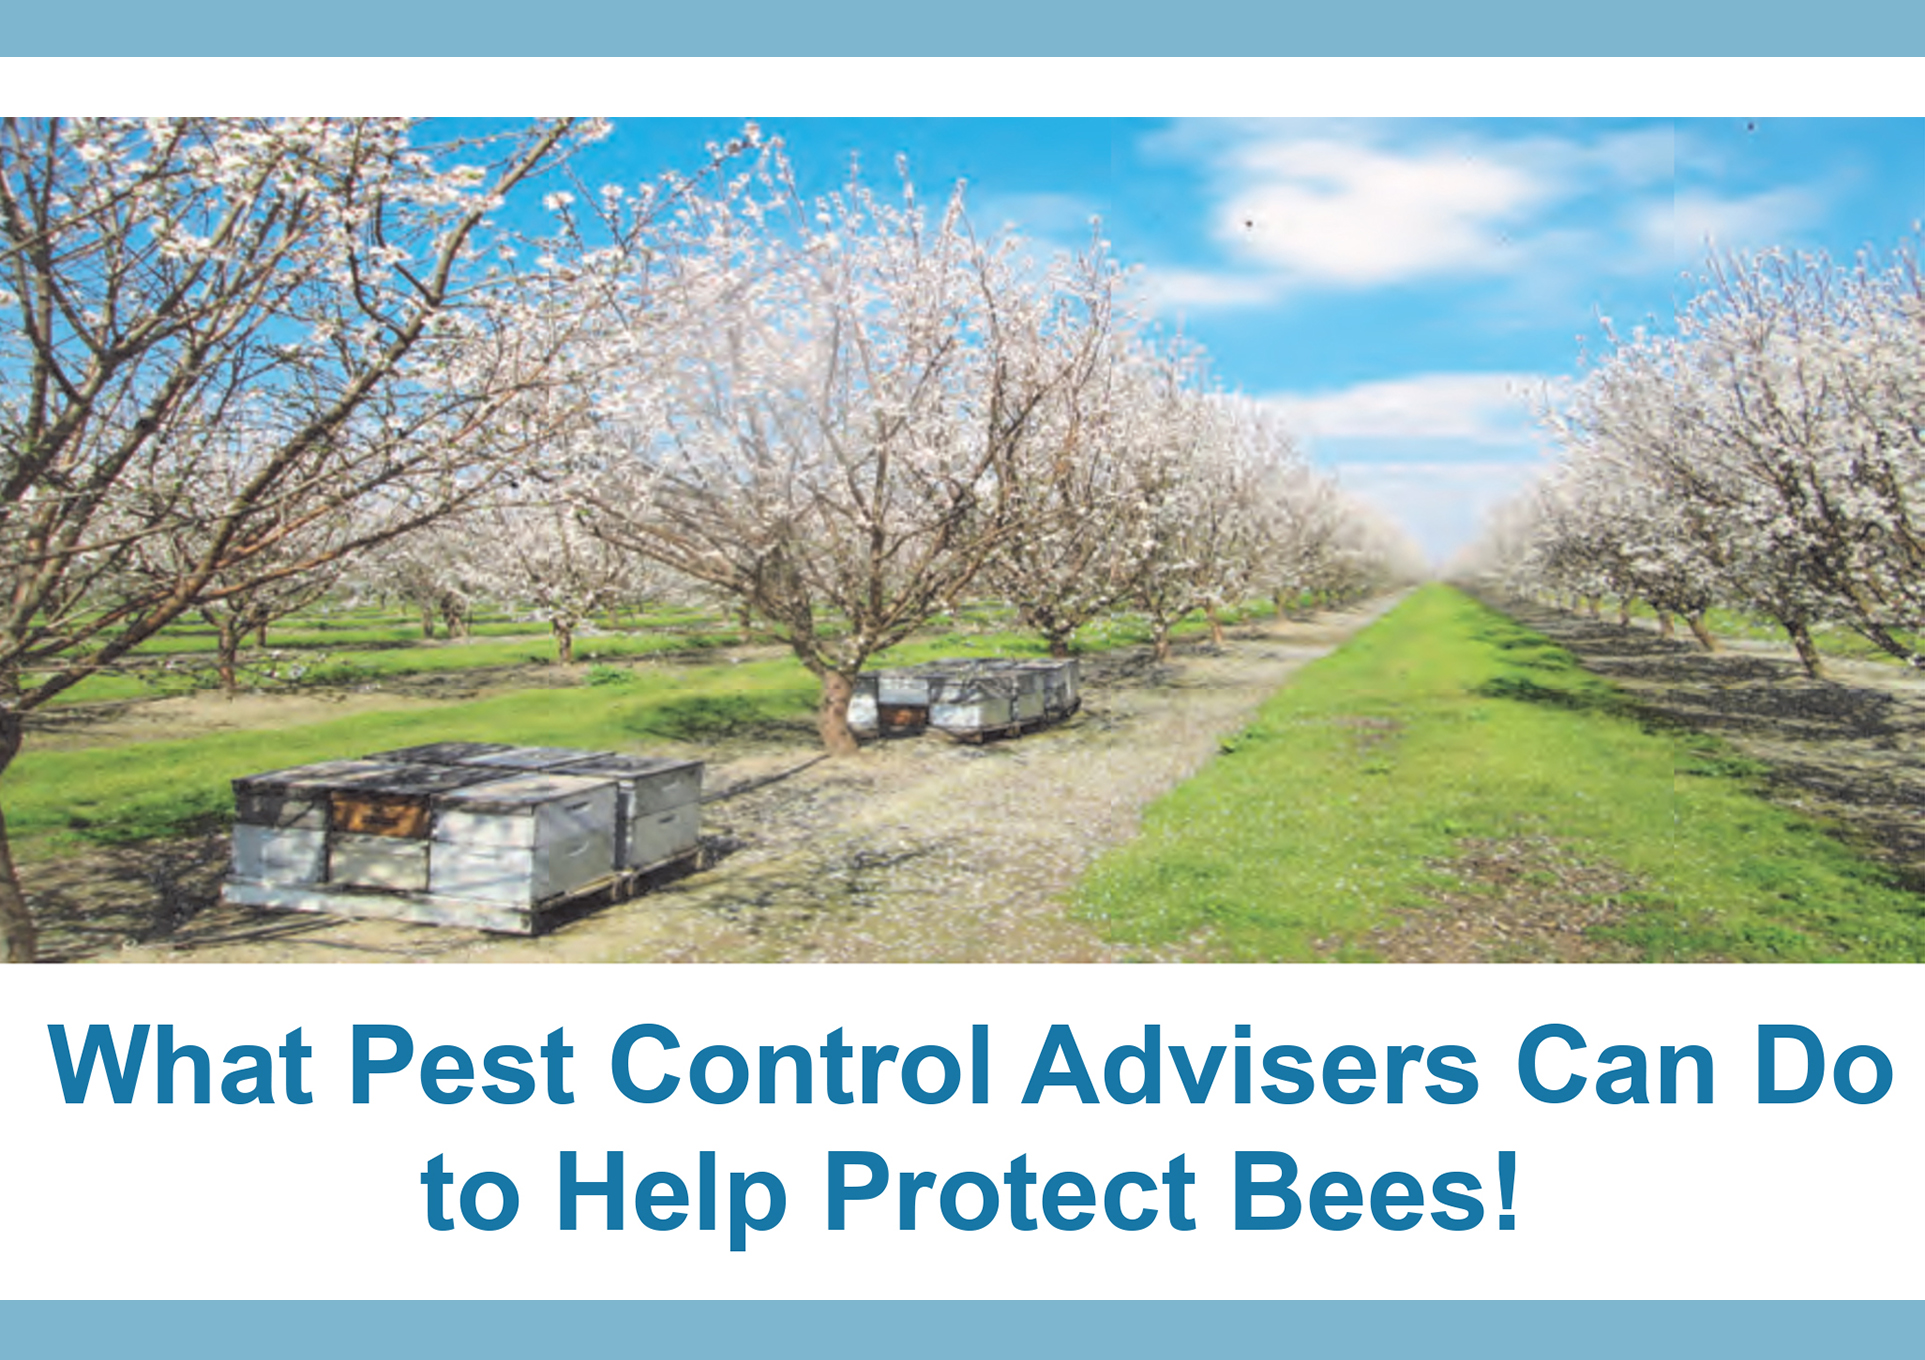 What Pest Control Advisers Can Do to Help Protect Bees!